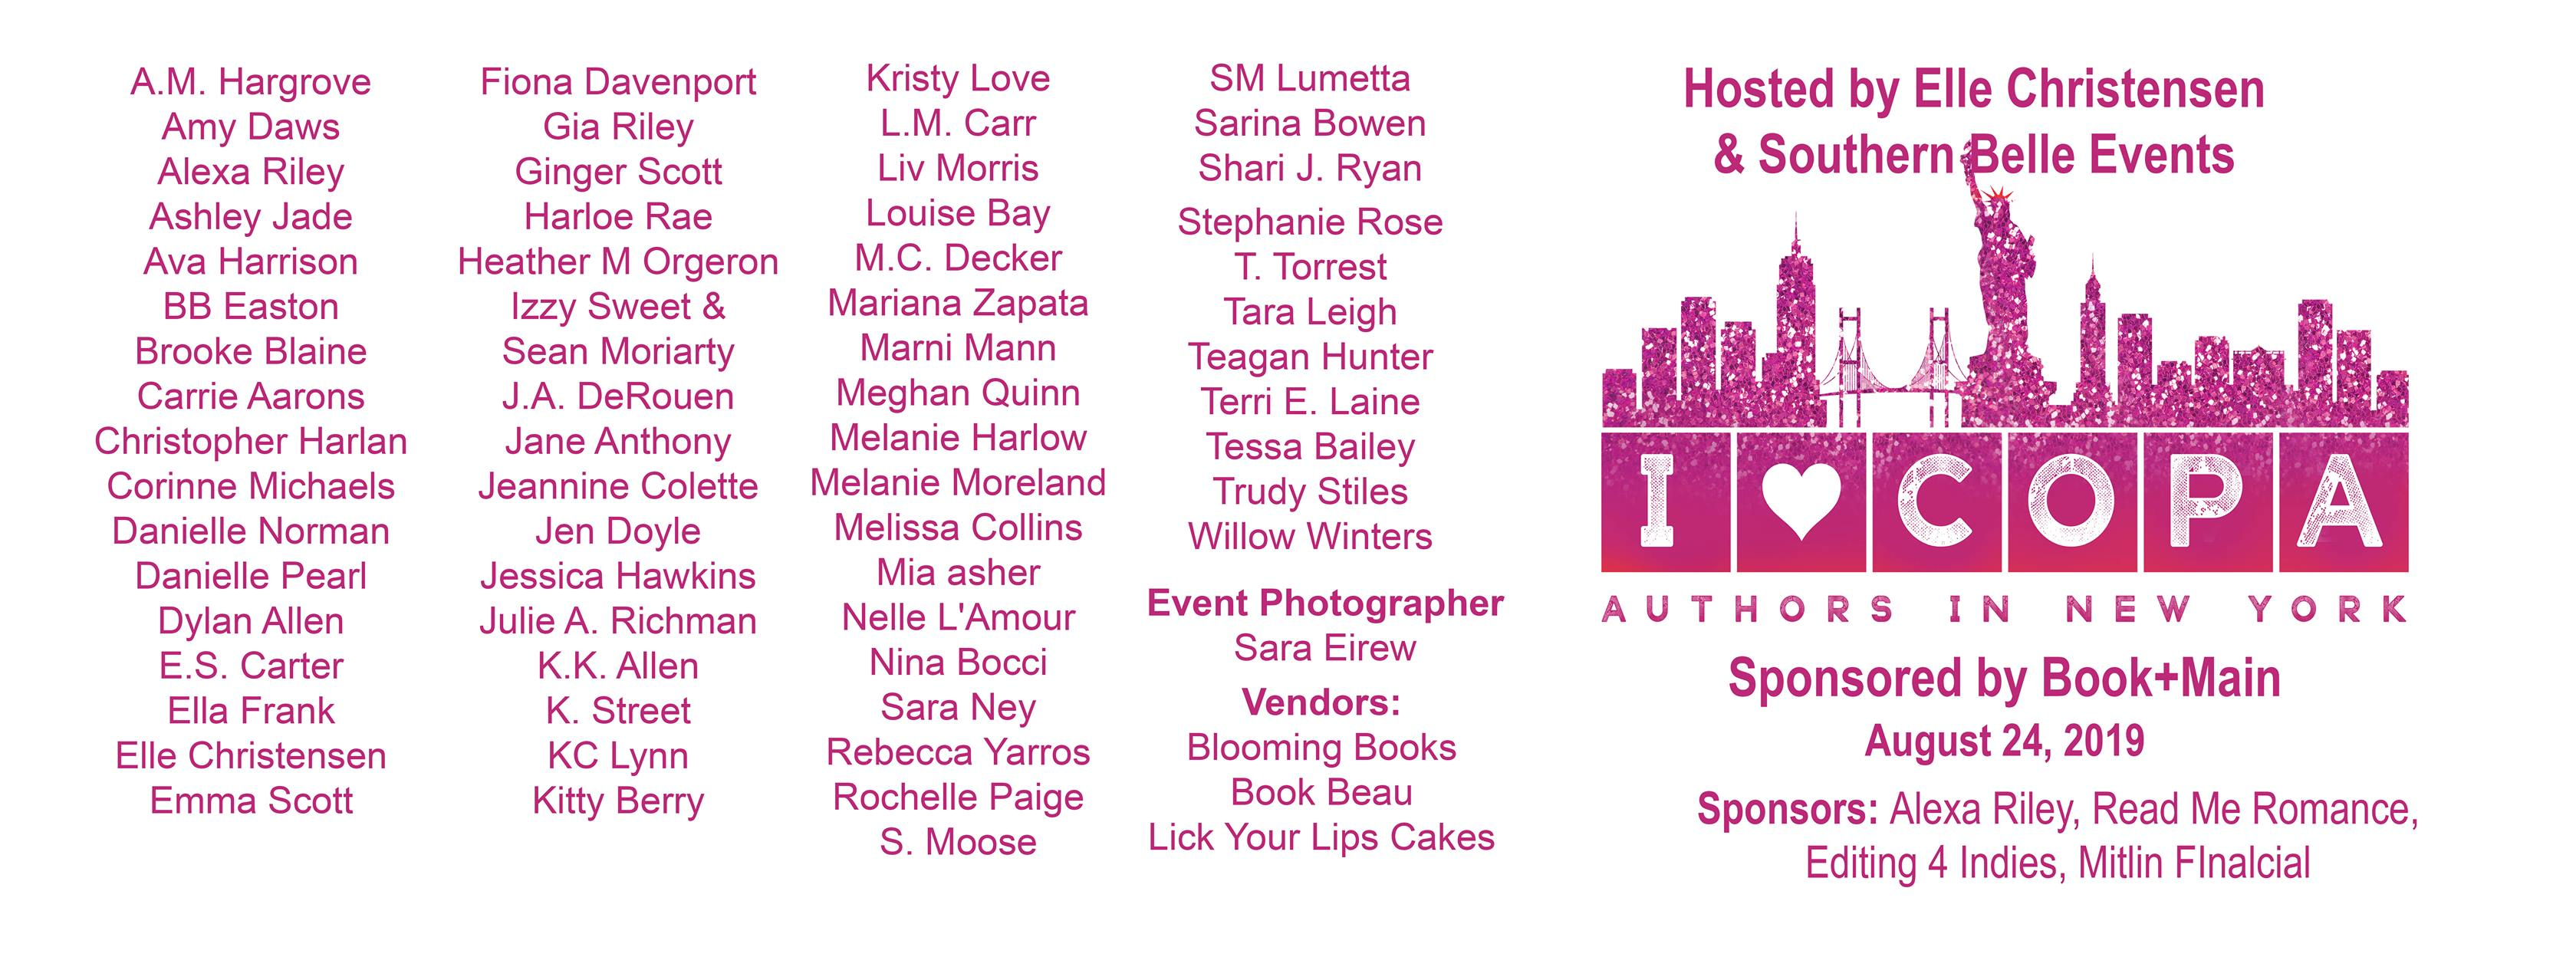 Romance Author Signing Events 2020.Copa Authors In New York